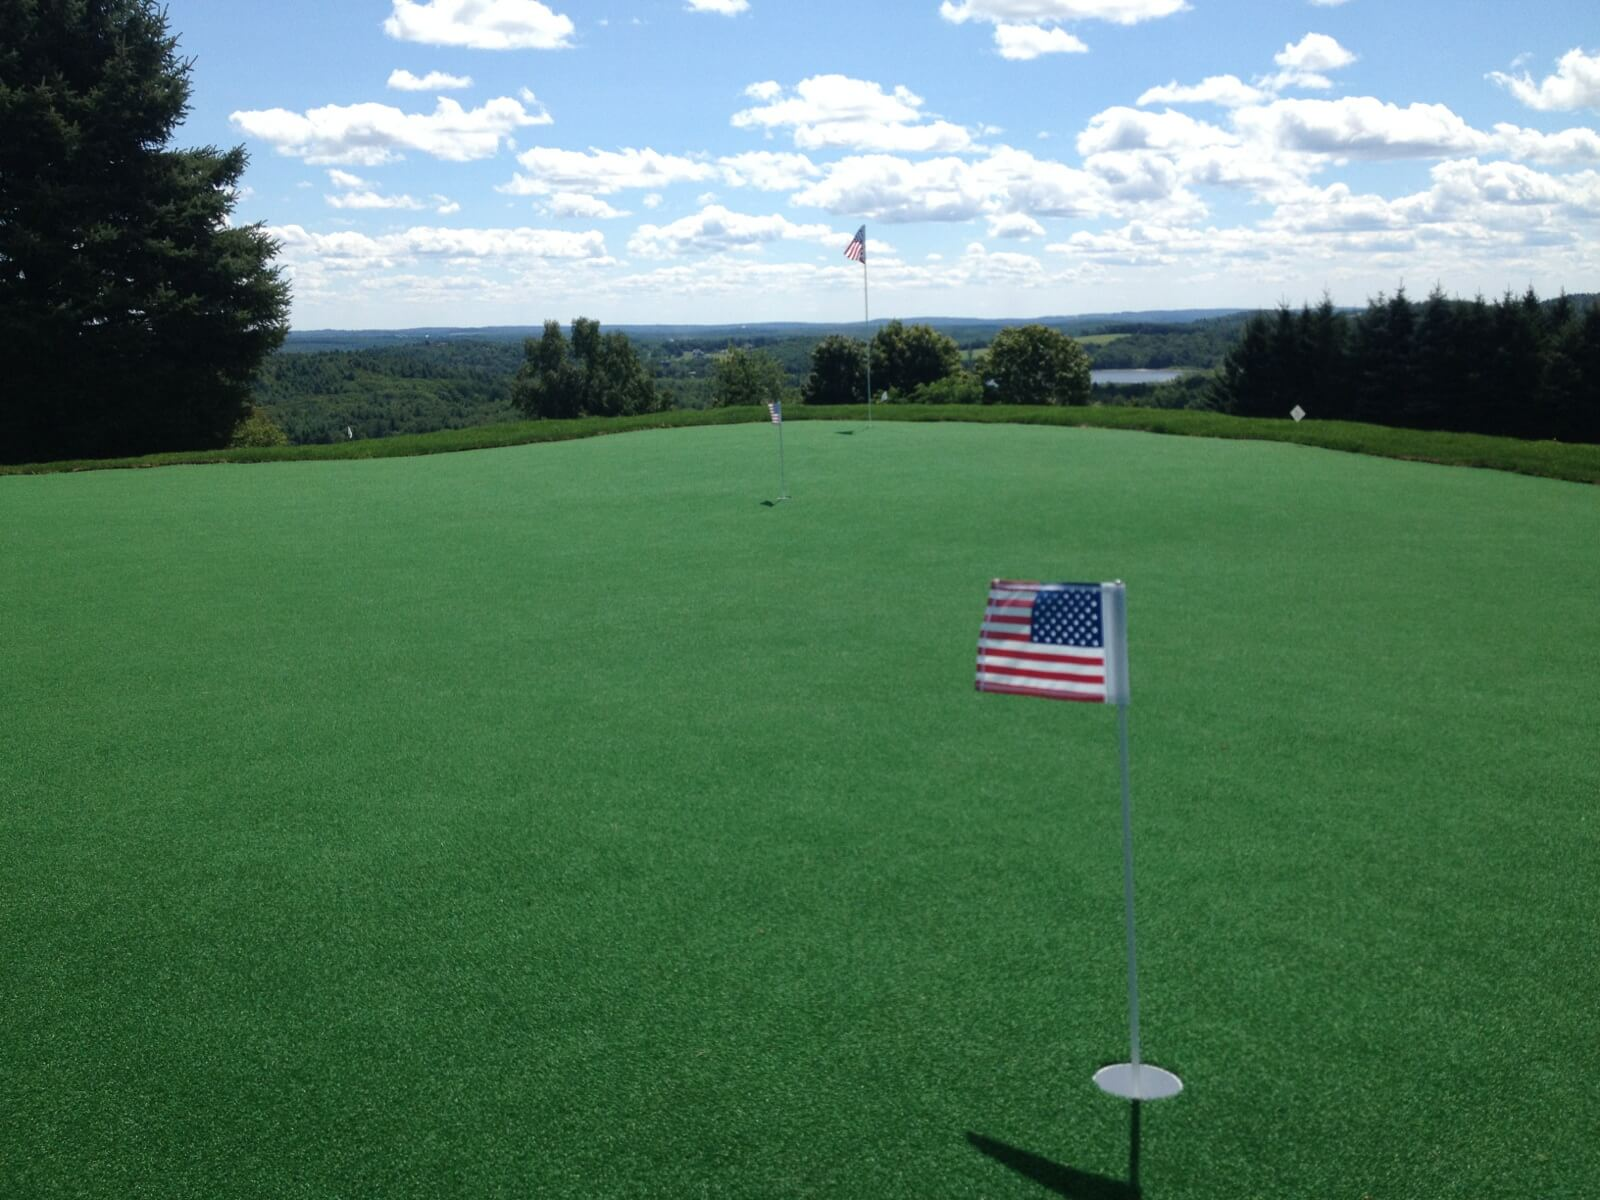 Putting Green w American Flag